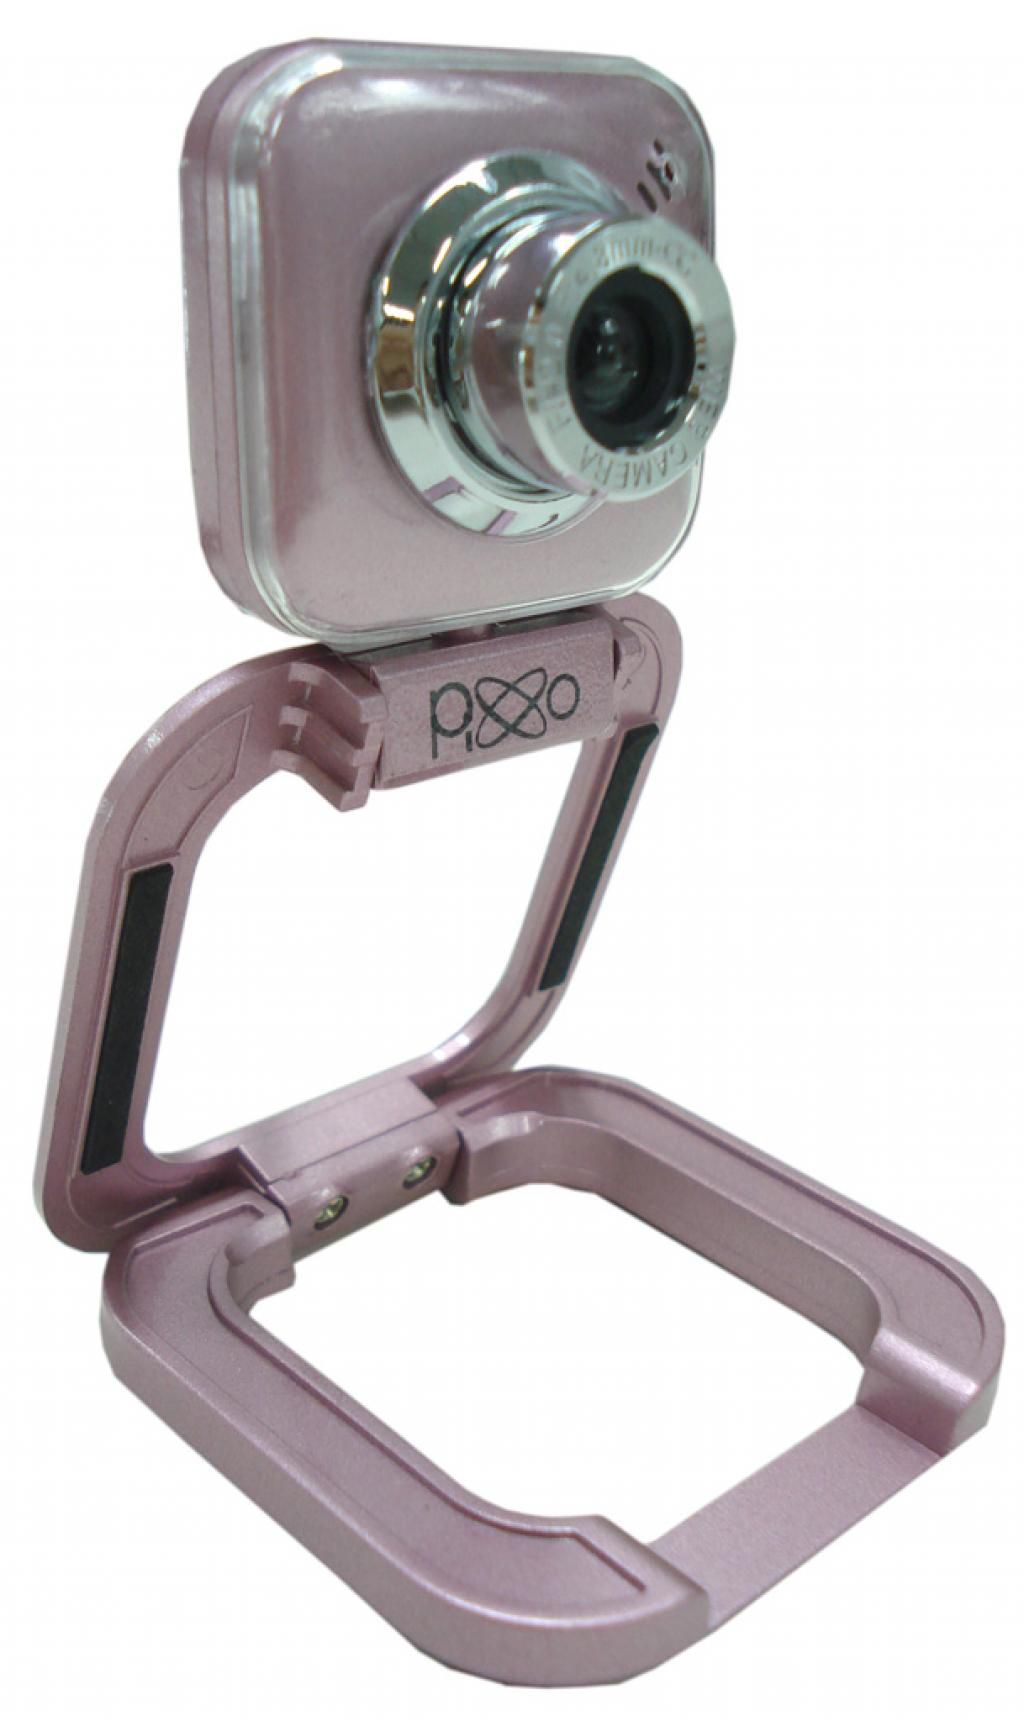 WEBCAM 20MP AW154VPPIX PIXXO